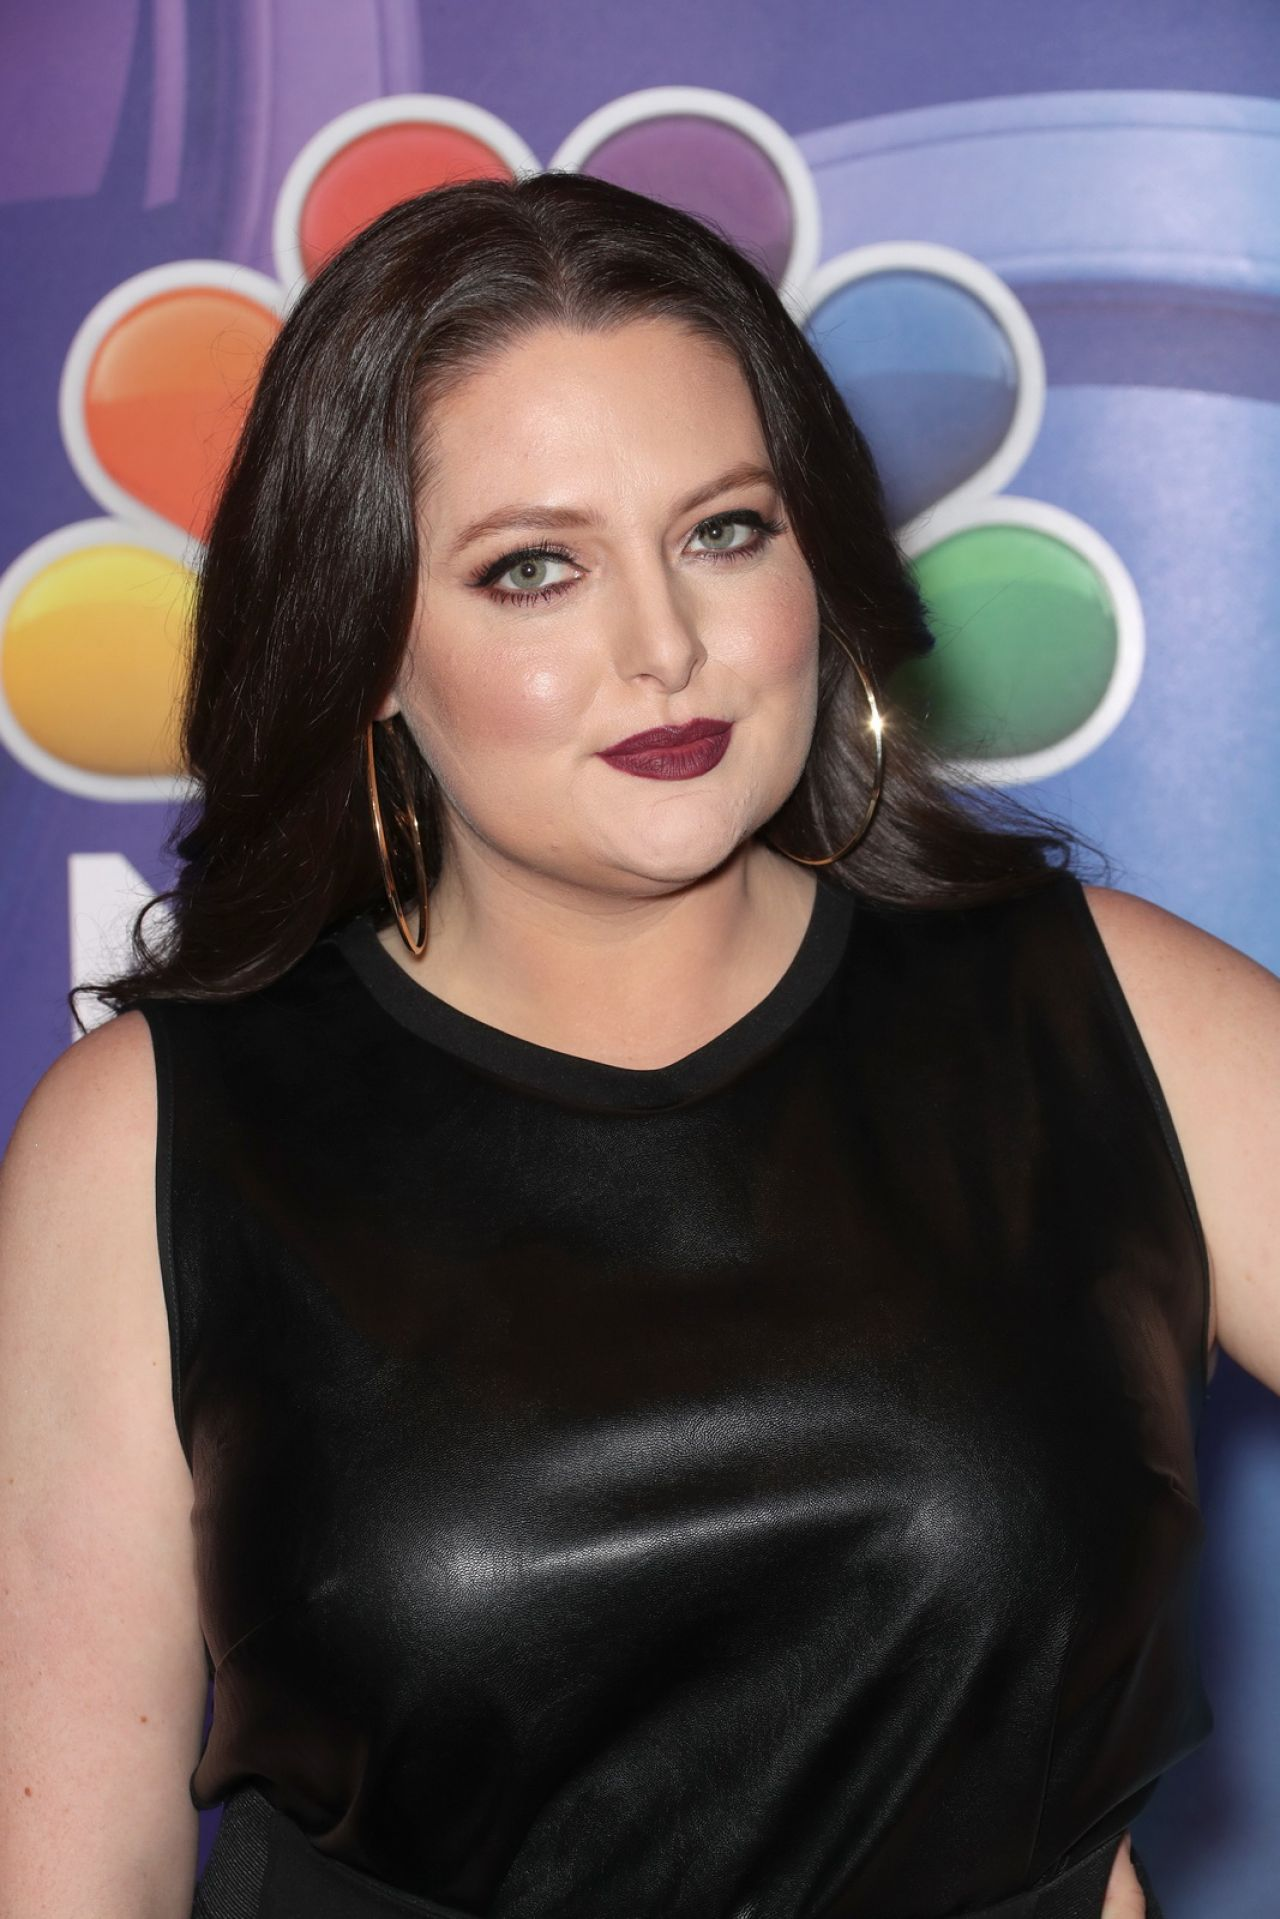 Lauren Ash Nbc Mid Season Press Day In New York 03 08 2018